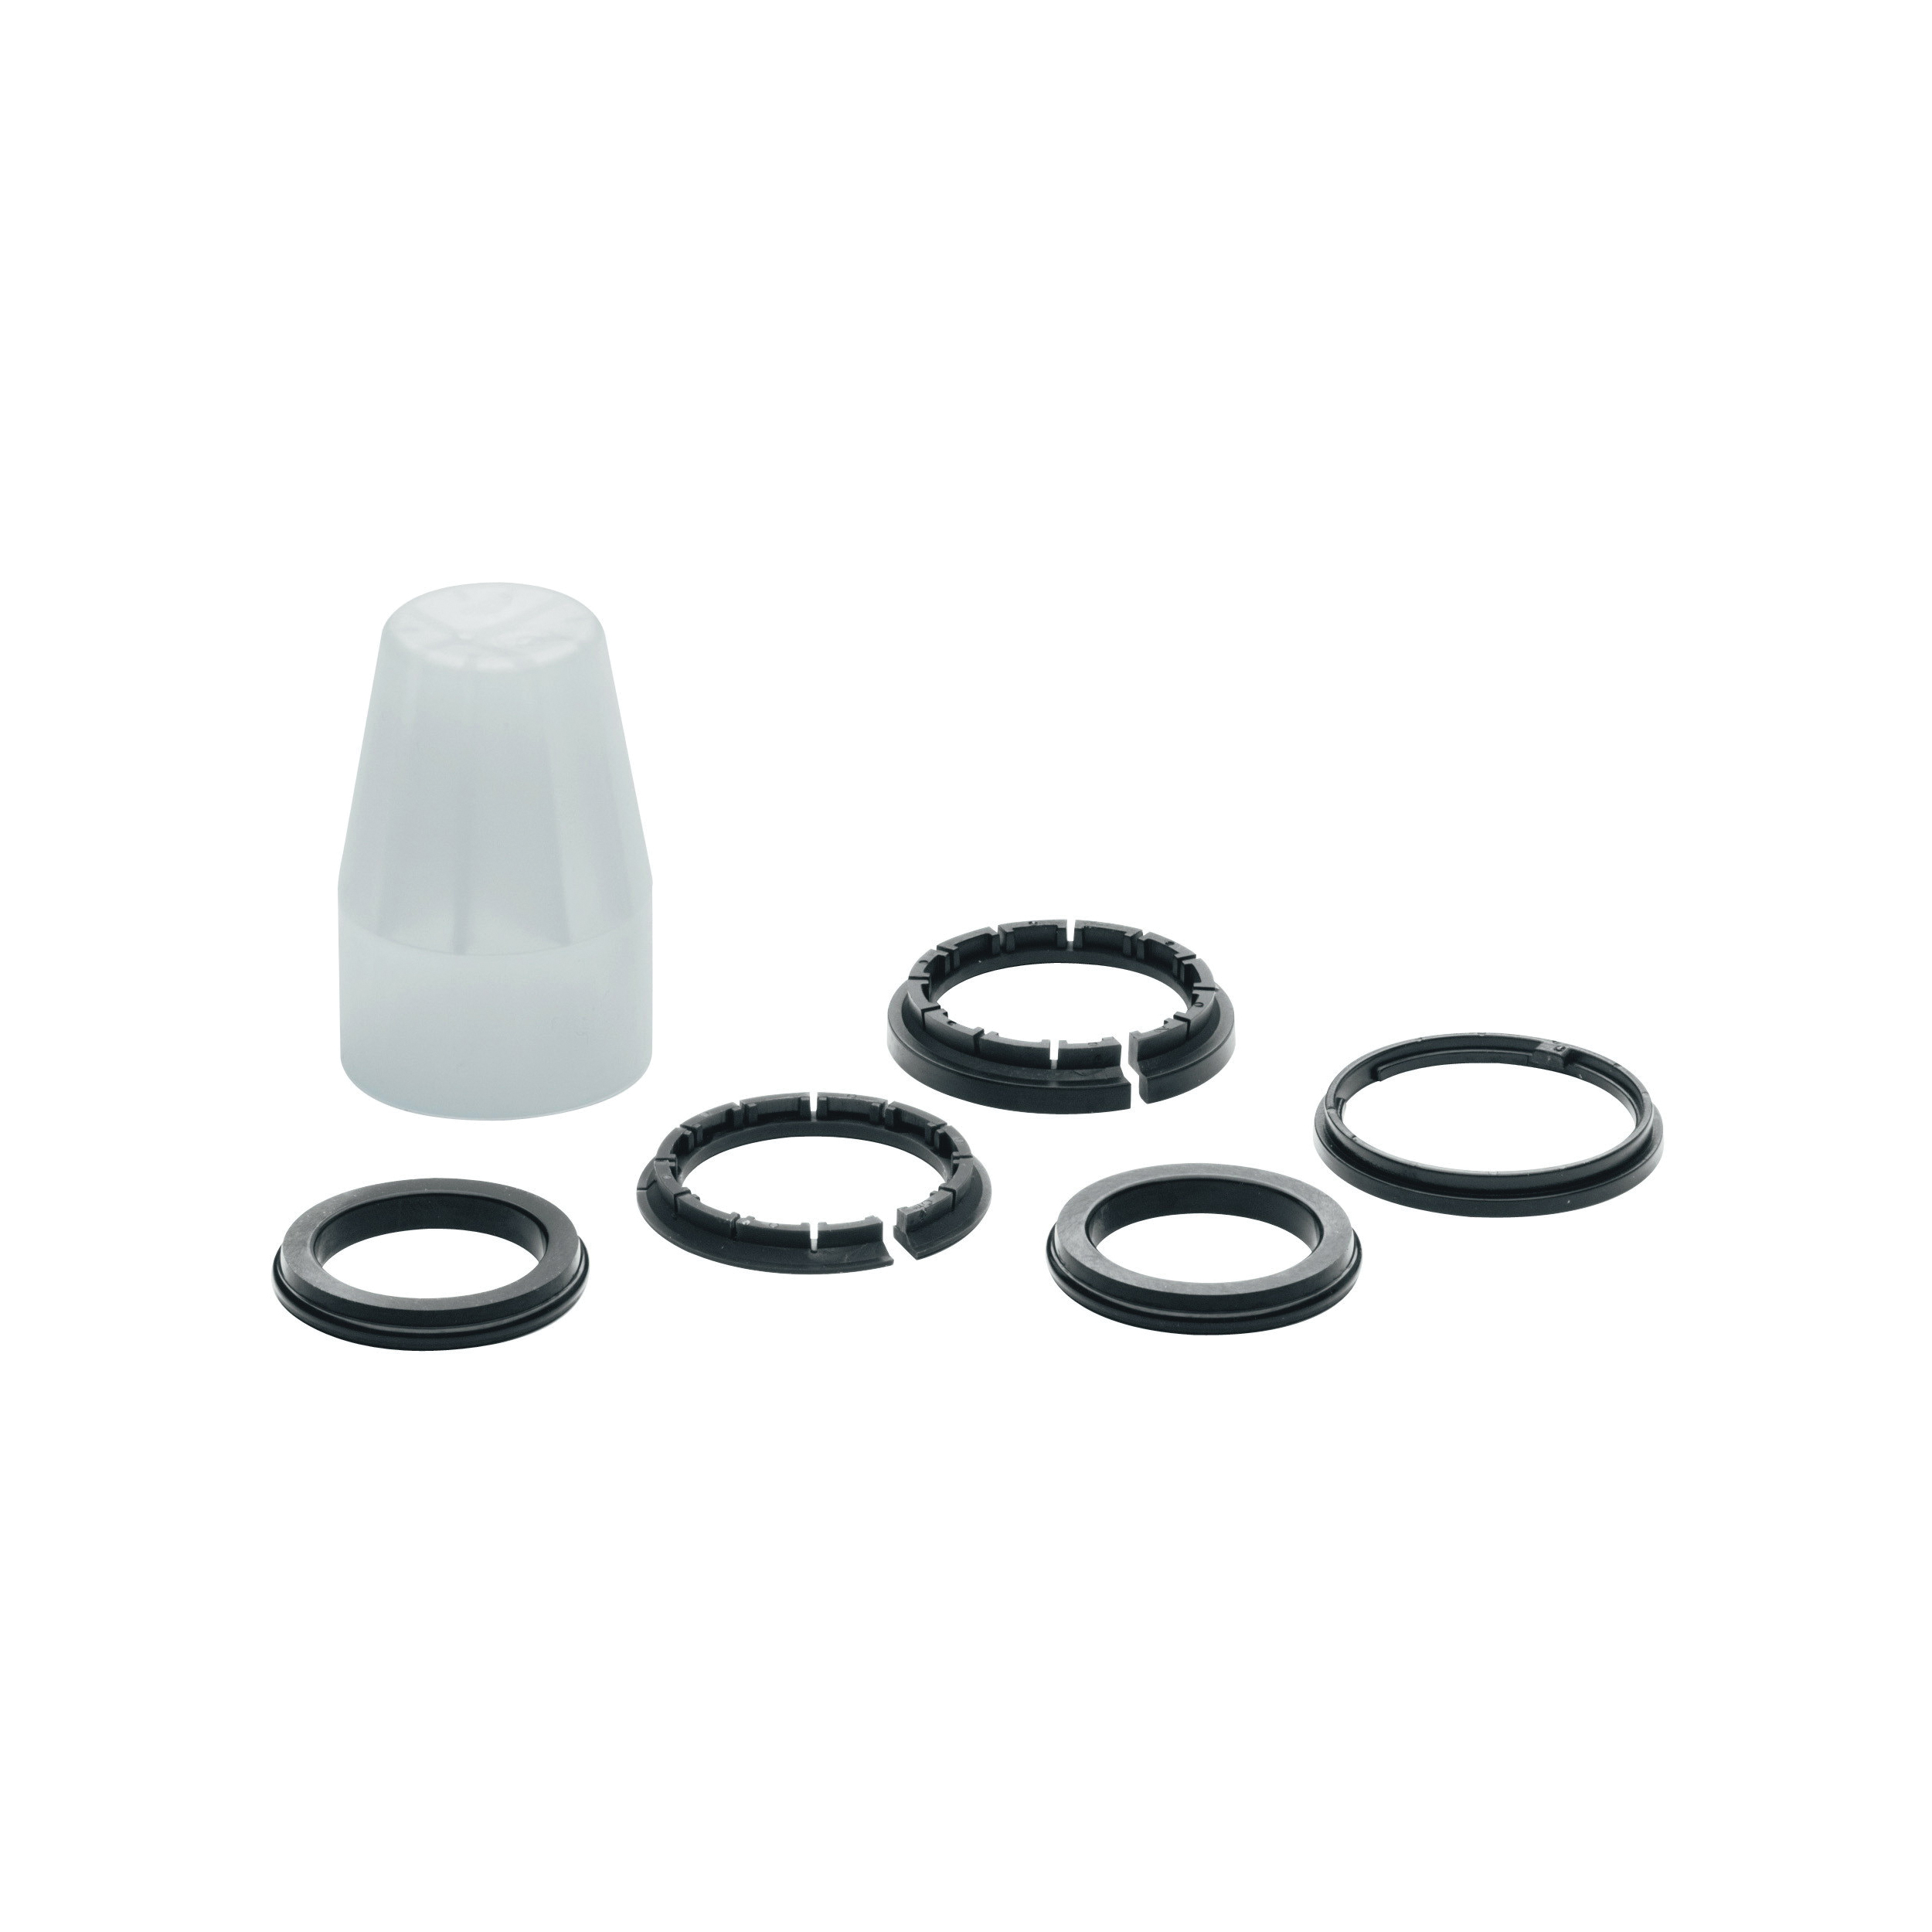 GROHE 46077000 Seal Kit, For Use With 33864/33867 Kitchen Faucet, Import